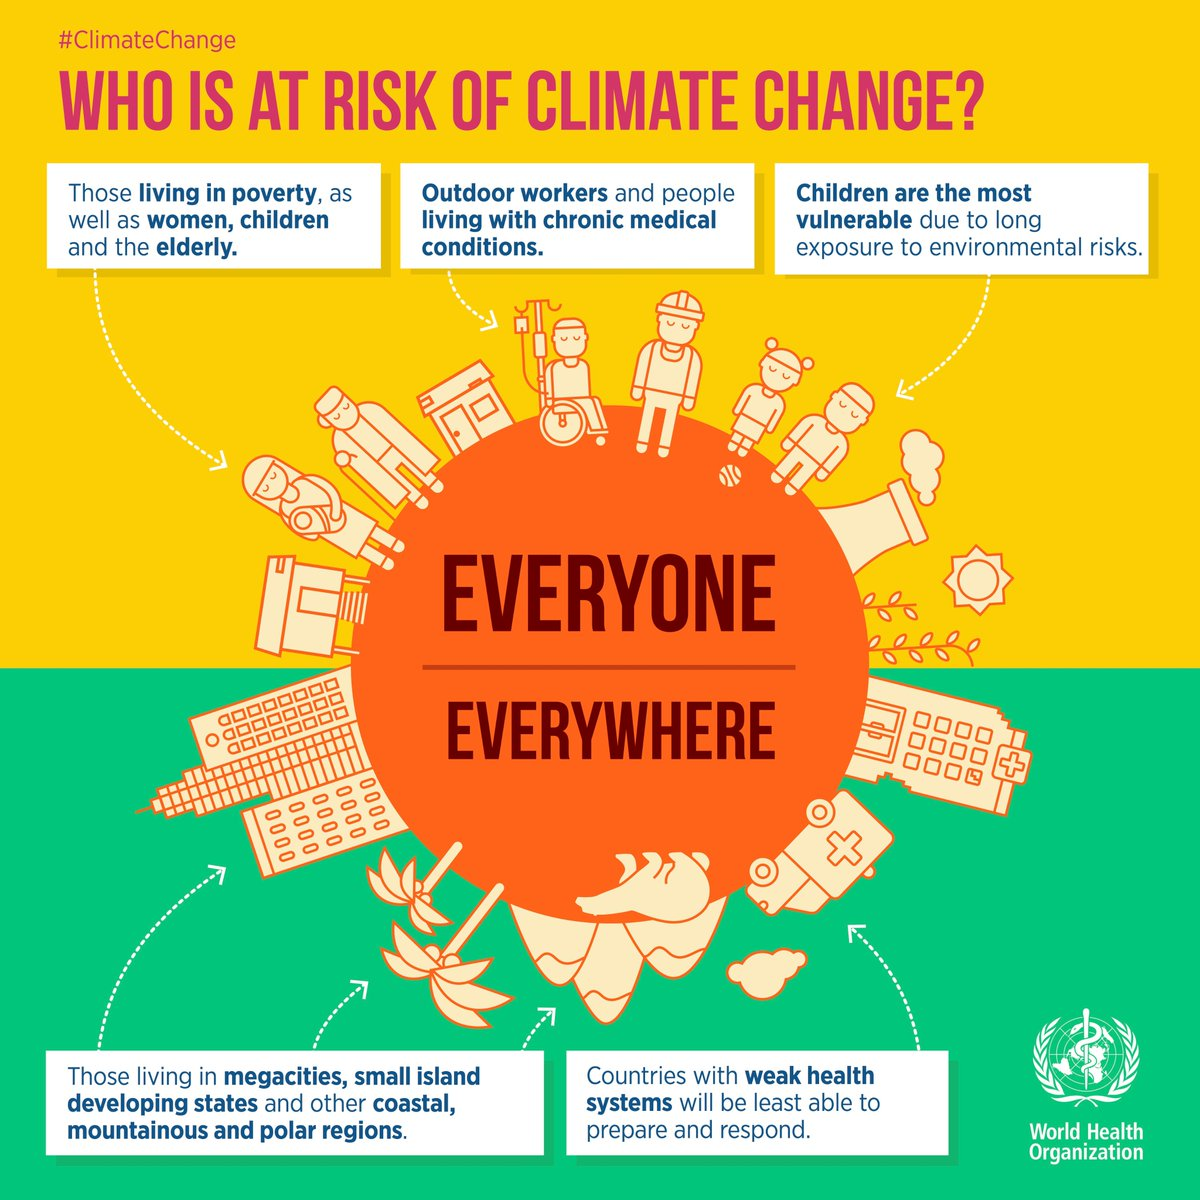 RT @WHO: Everyone, everywhere is at risk of